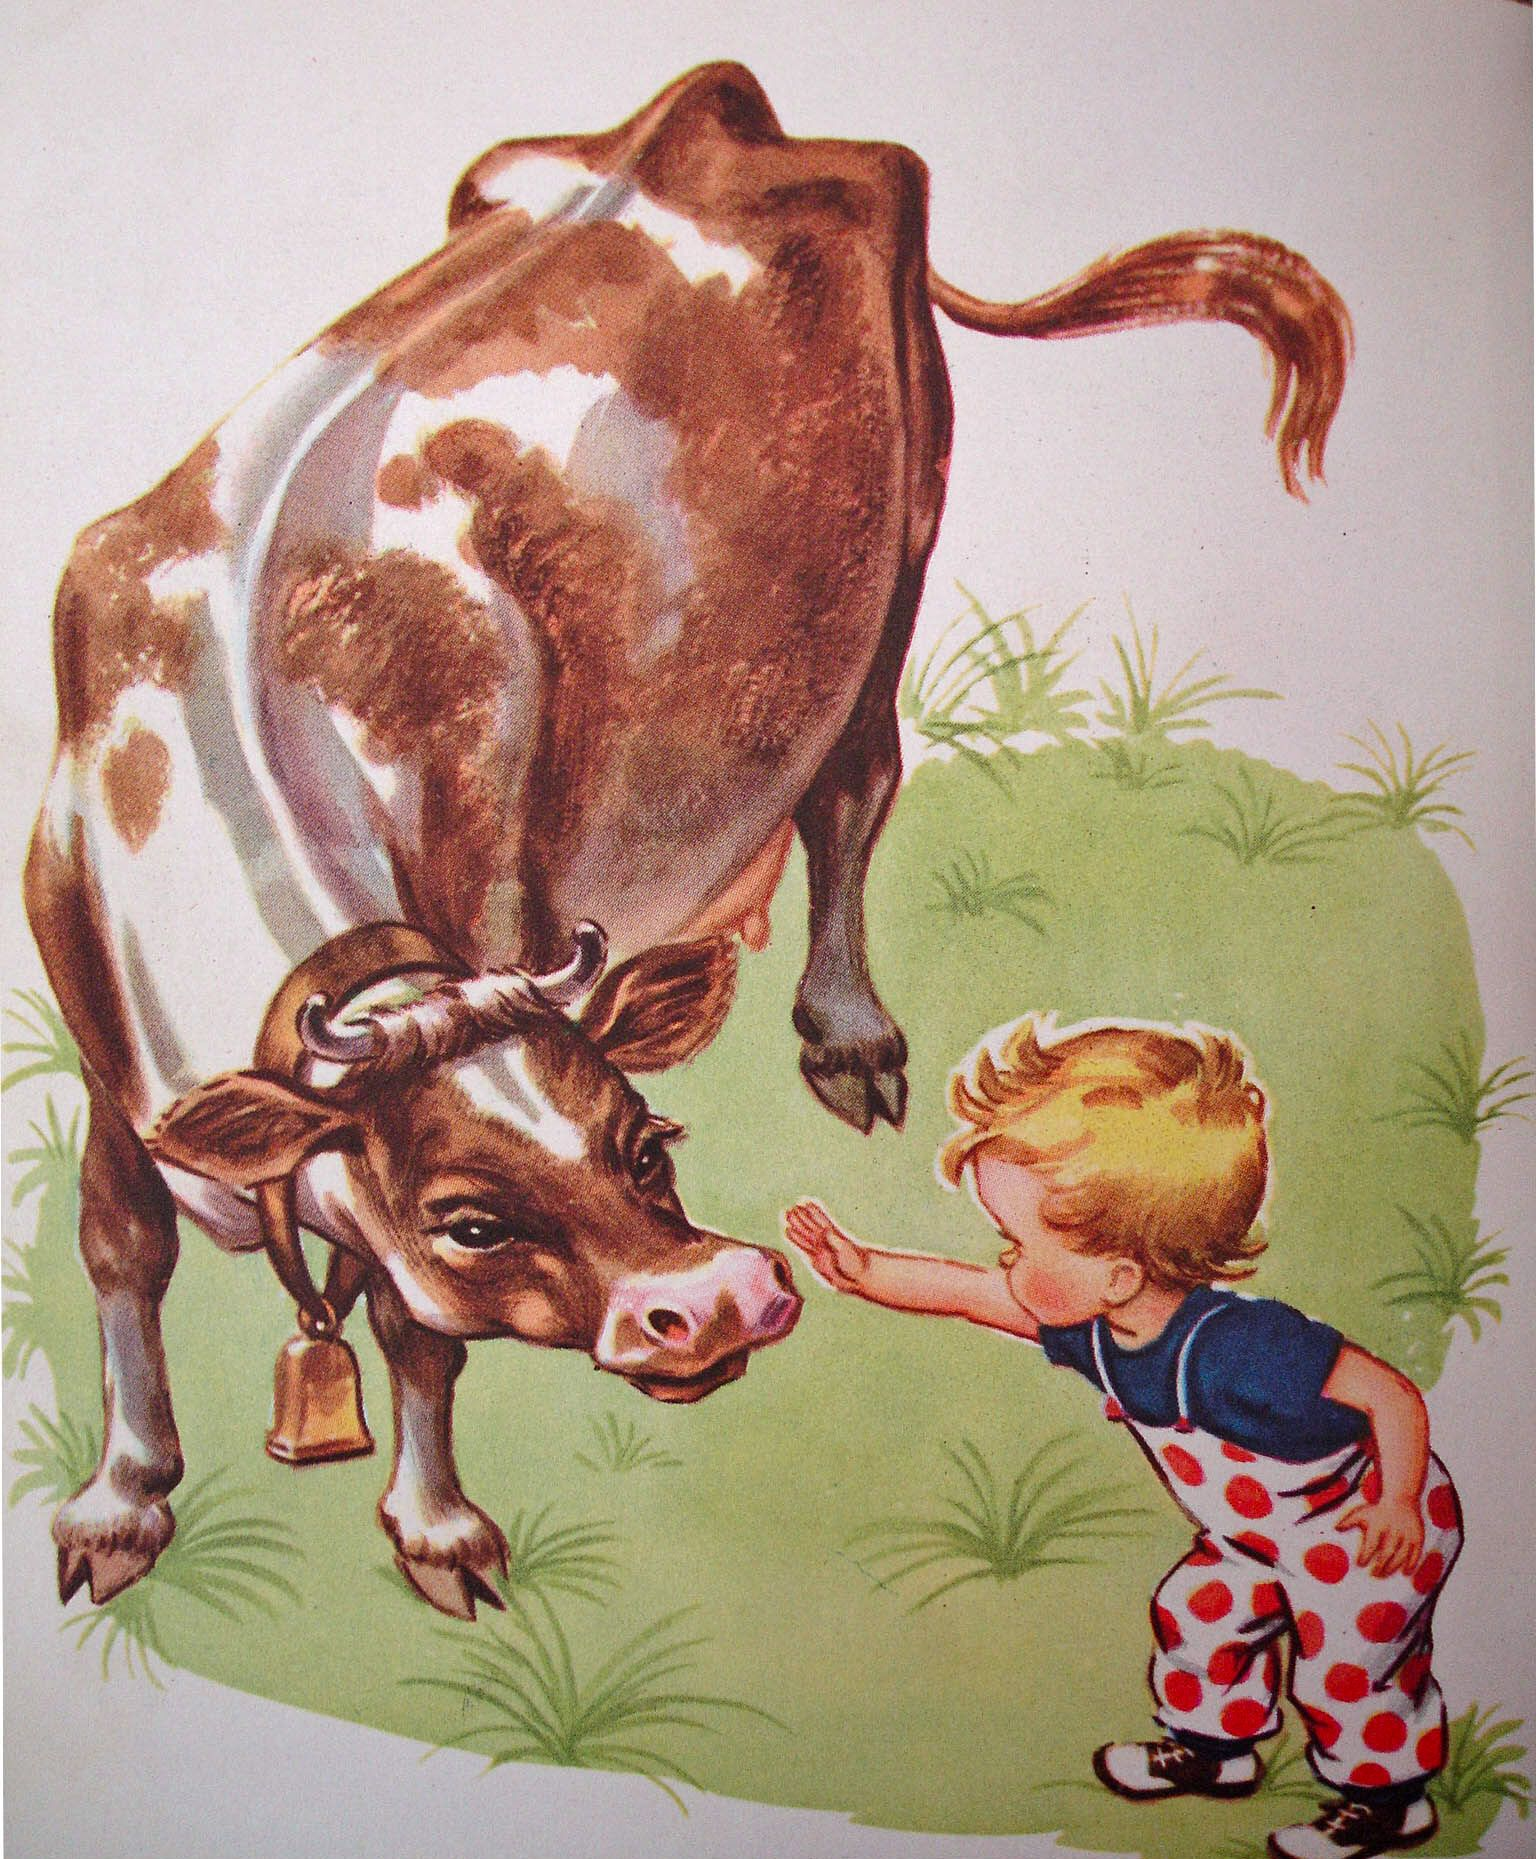 How Big, A Little Golden Book, Story & Pictures by Corinne Malvern, 1949.